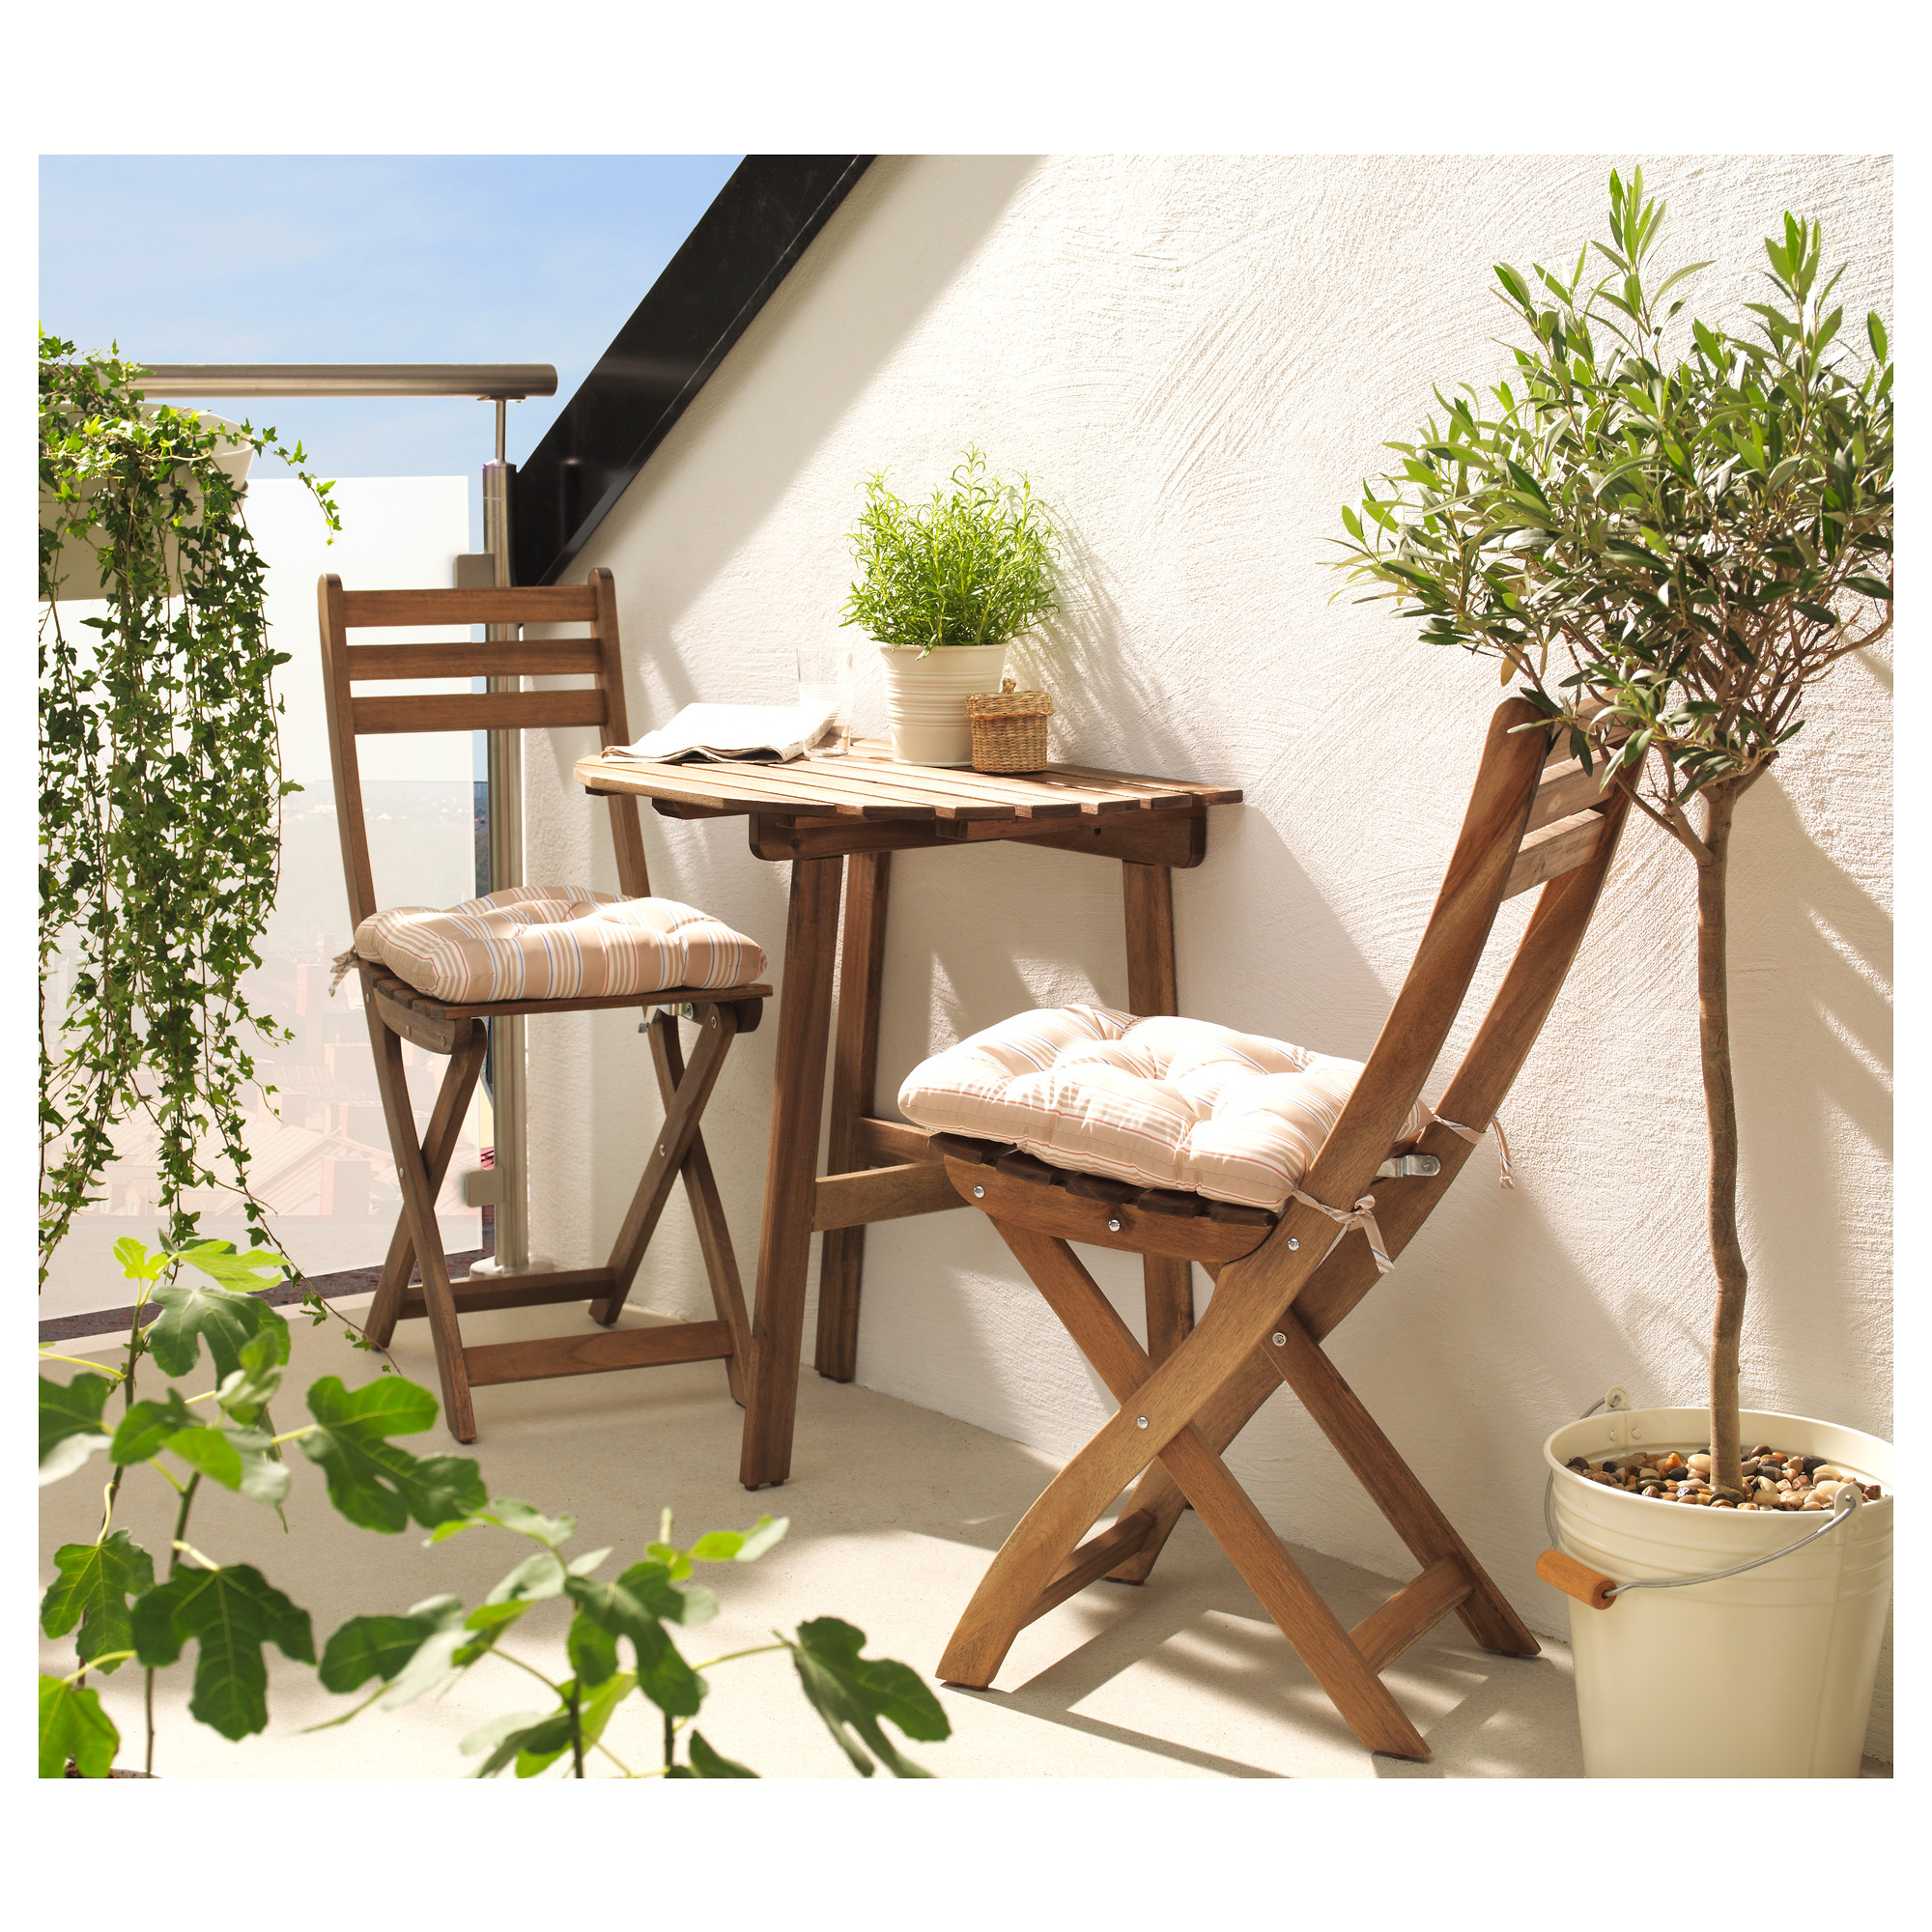 Elegant pictures of small patio table and chairs - chair ide.